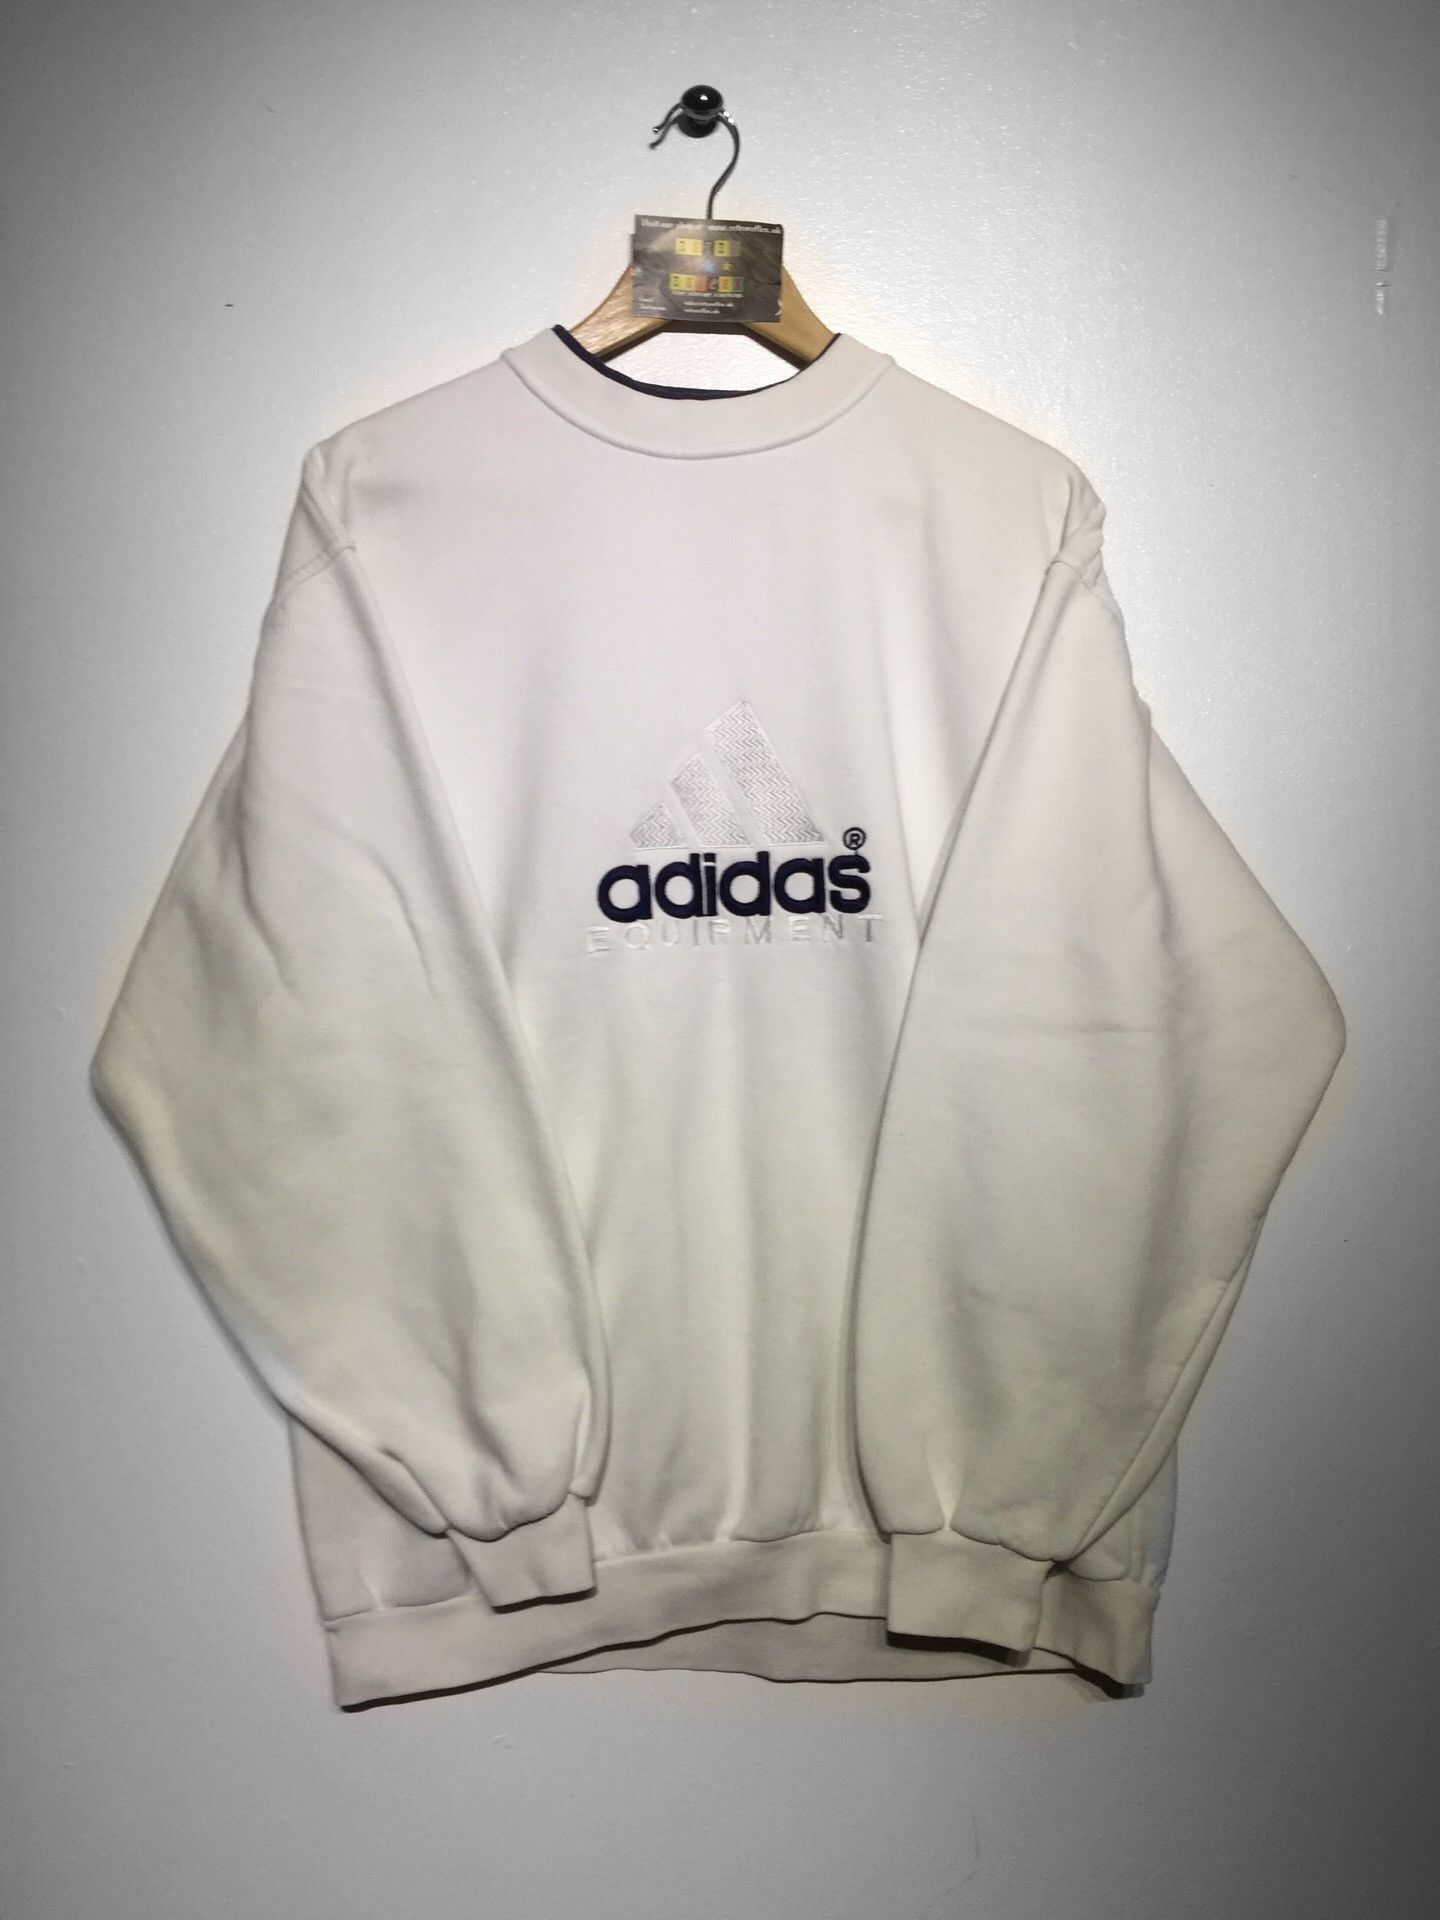 Vintage Adidas Sweatshirt Embroidery Logo Sports Wear Streetwear Pull Over Crew Neck Sweater Size L dsVntE